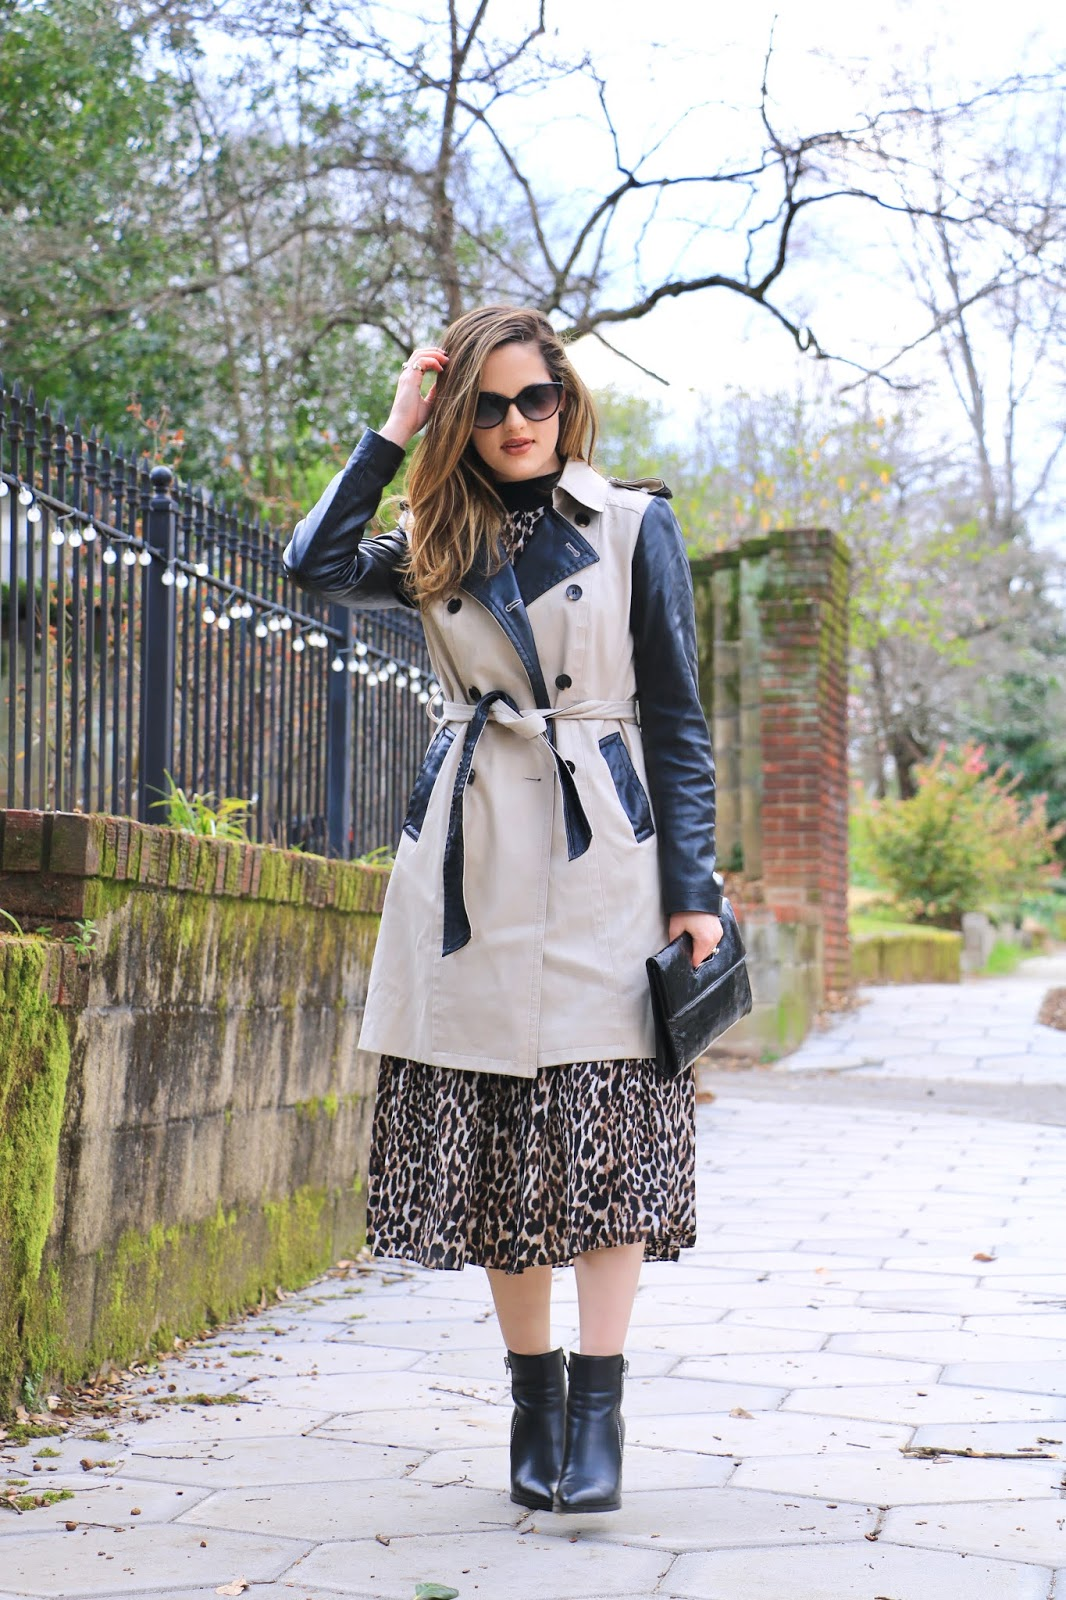 Nyc fashion blogger Kathleen Harper wearing a leopard midi dress outfit.